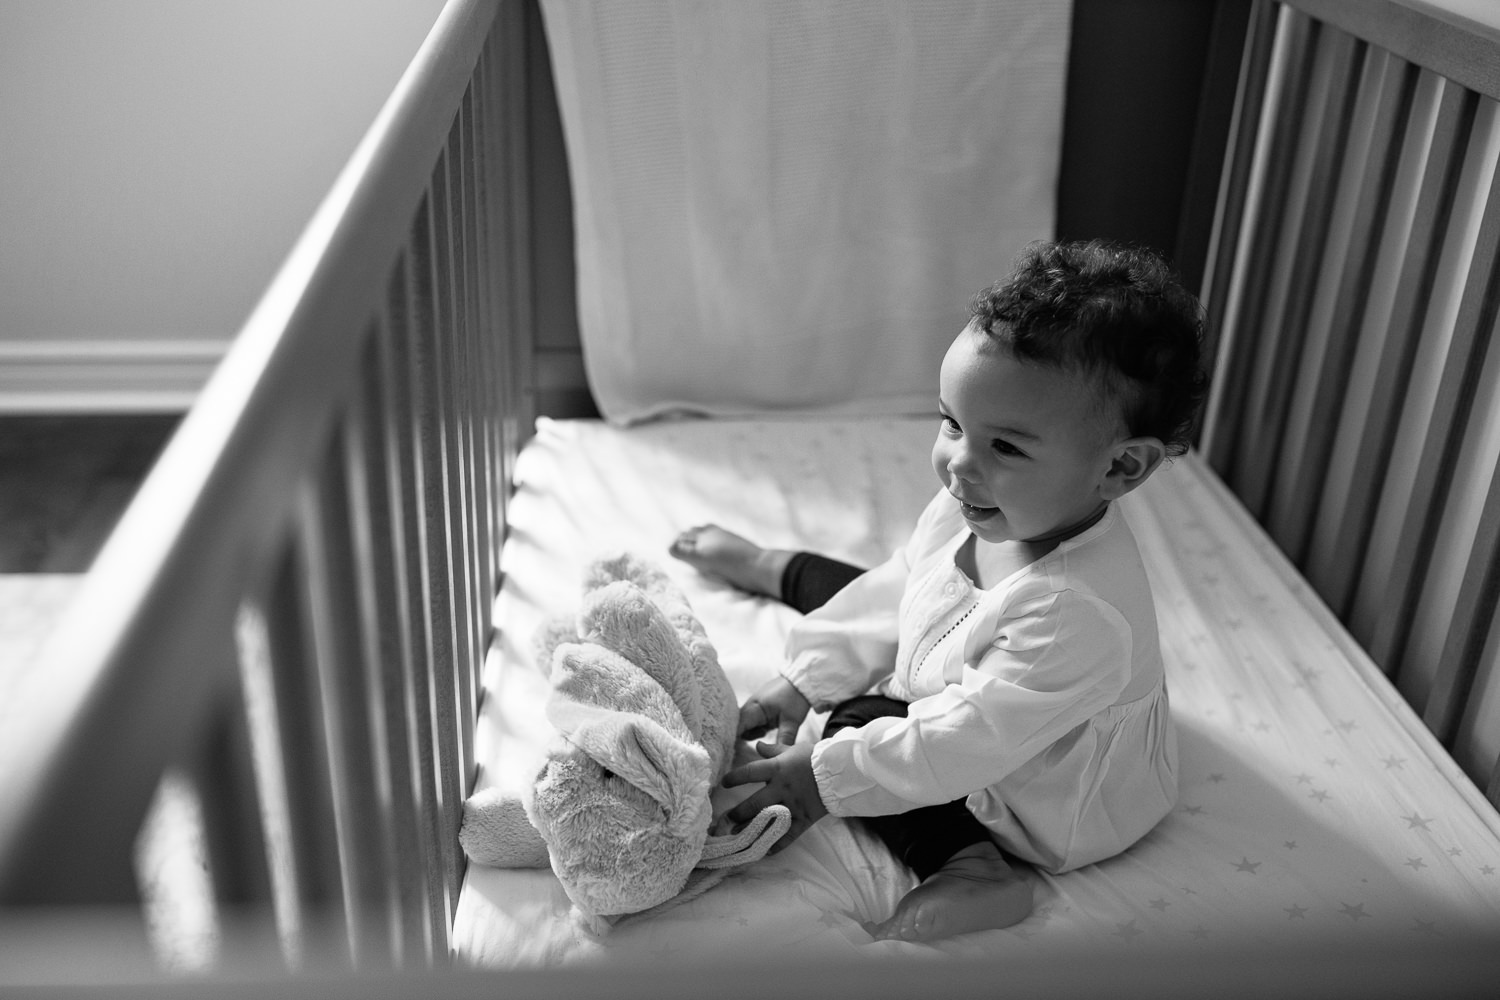 2 year old girl with dark curly hair and brown eyes in cream top and dark pants sitting in crib holding stuffed bunny and smiling -York Region Lifestyle Photos